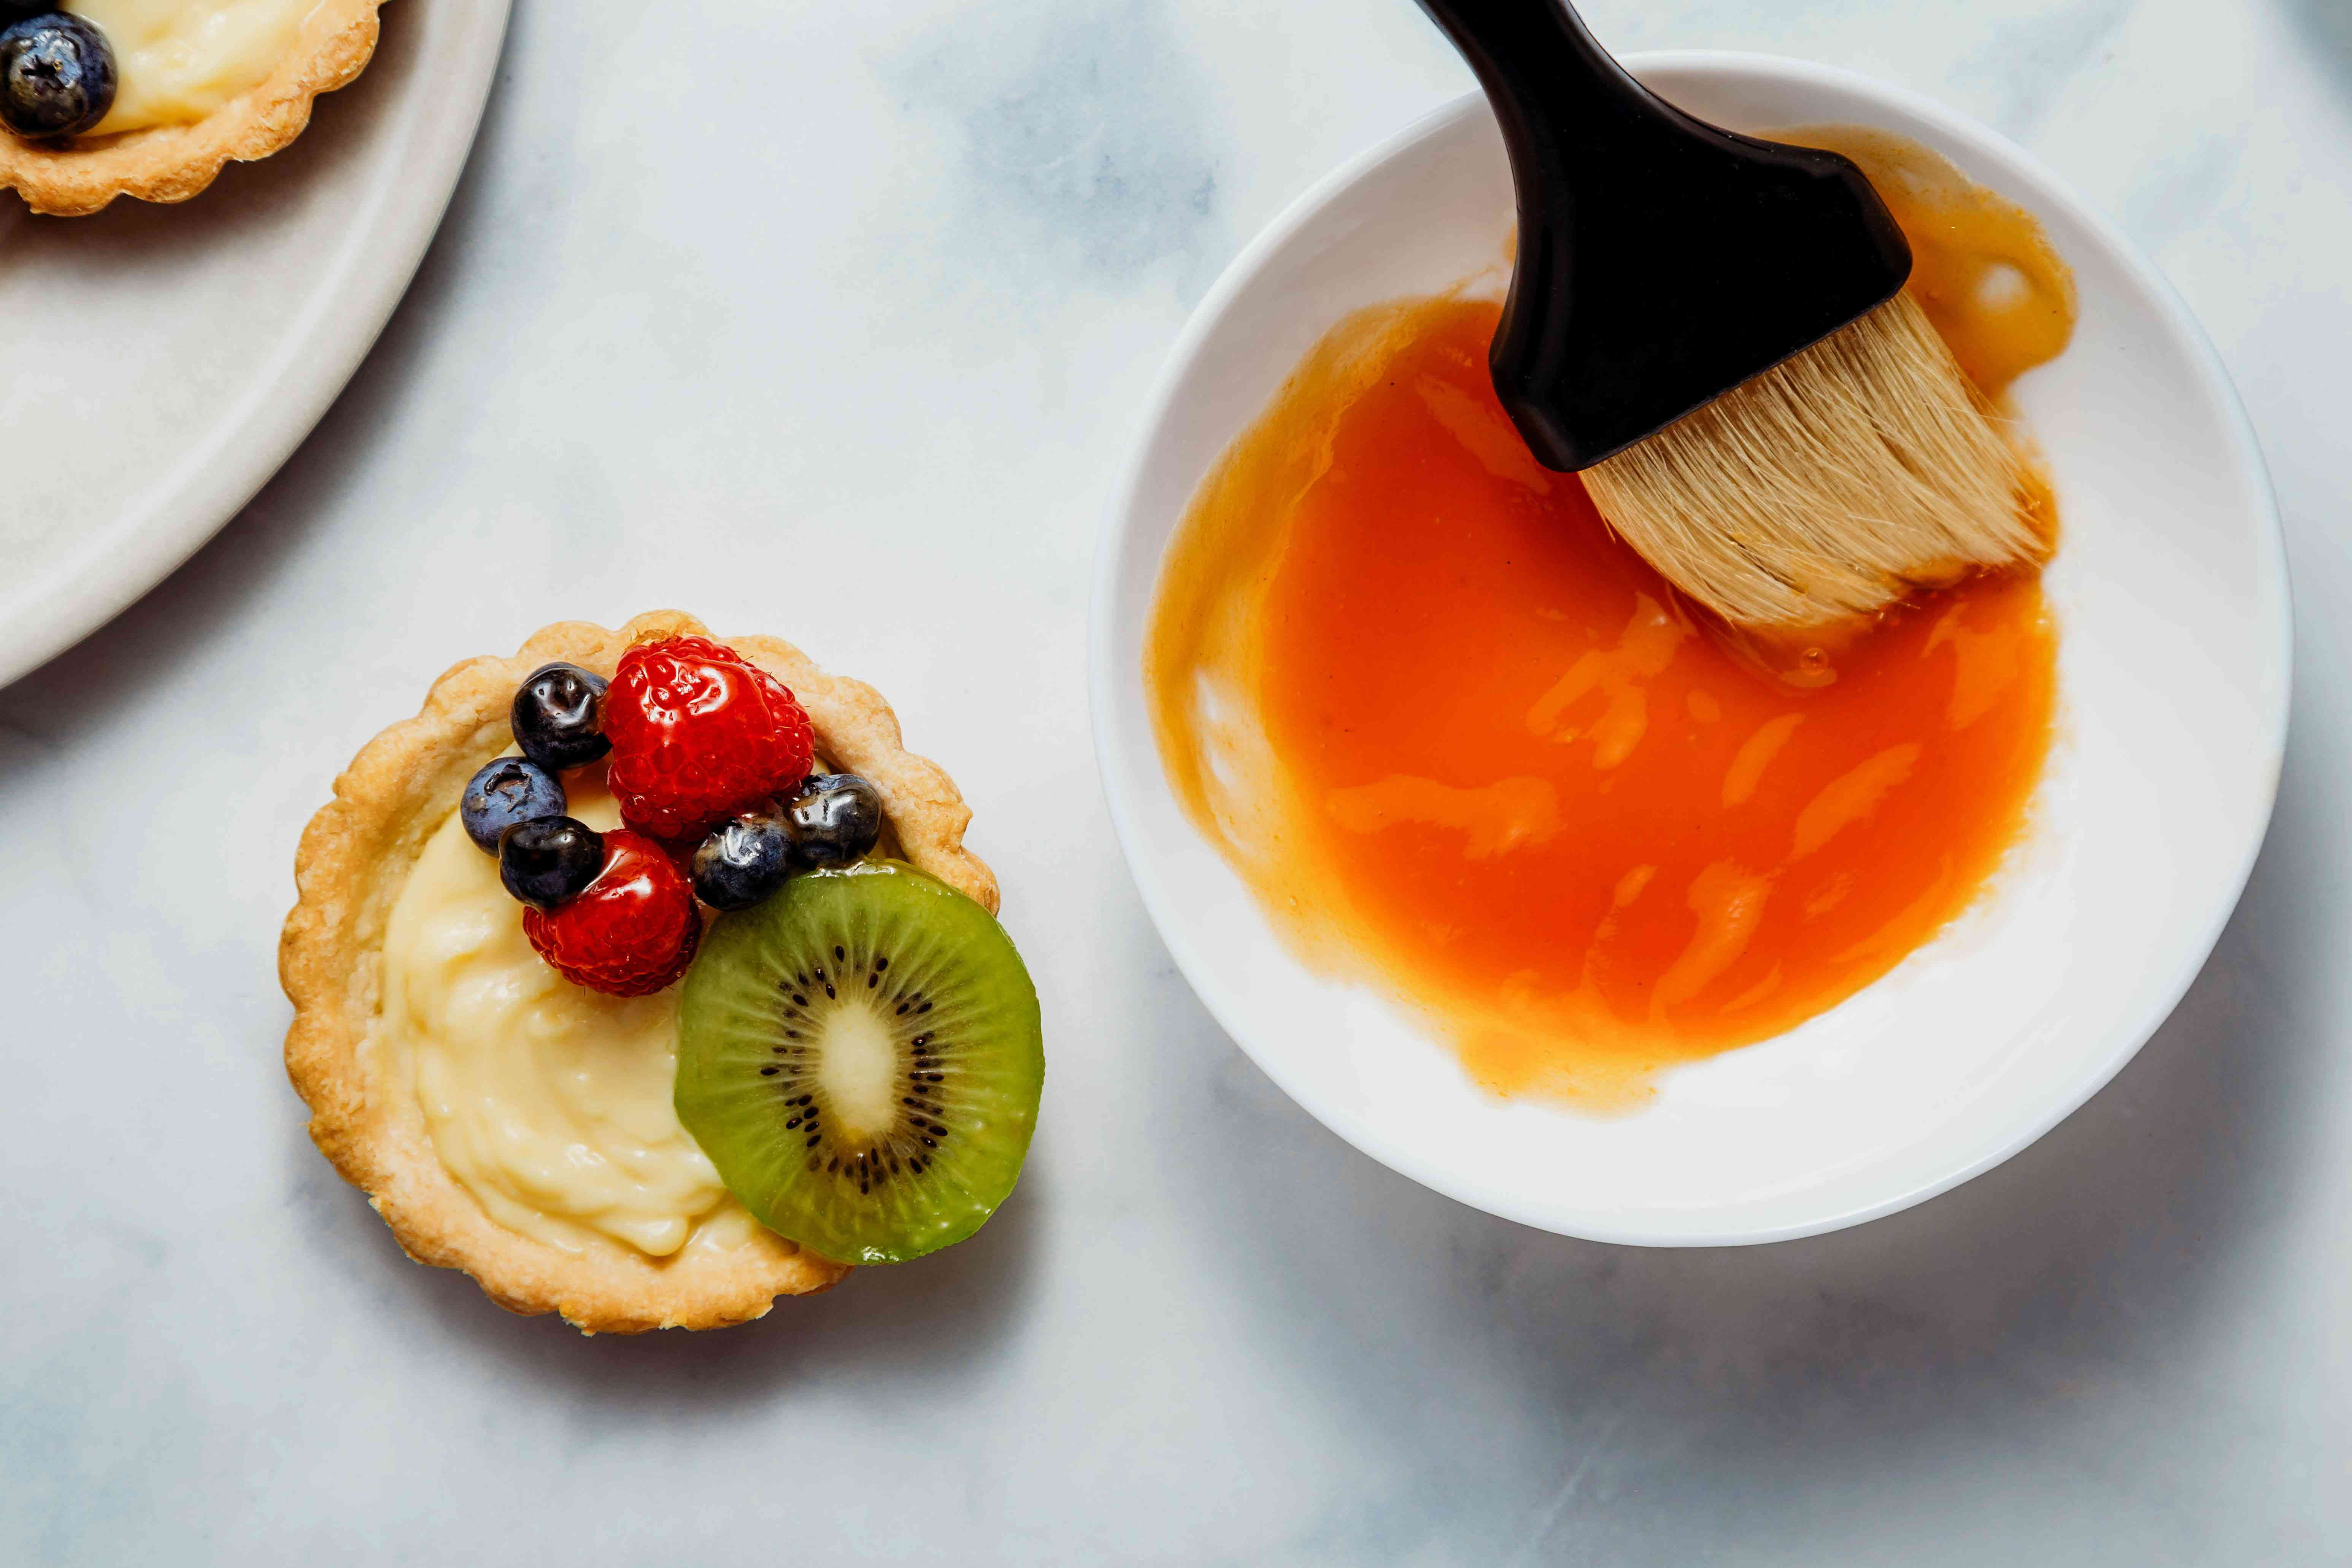 brush the fruit on each tart with the apricot glaze